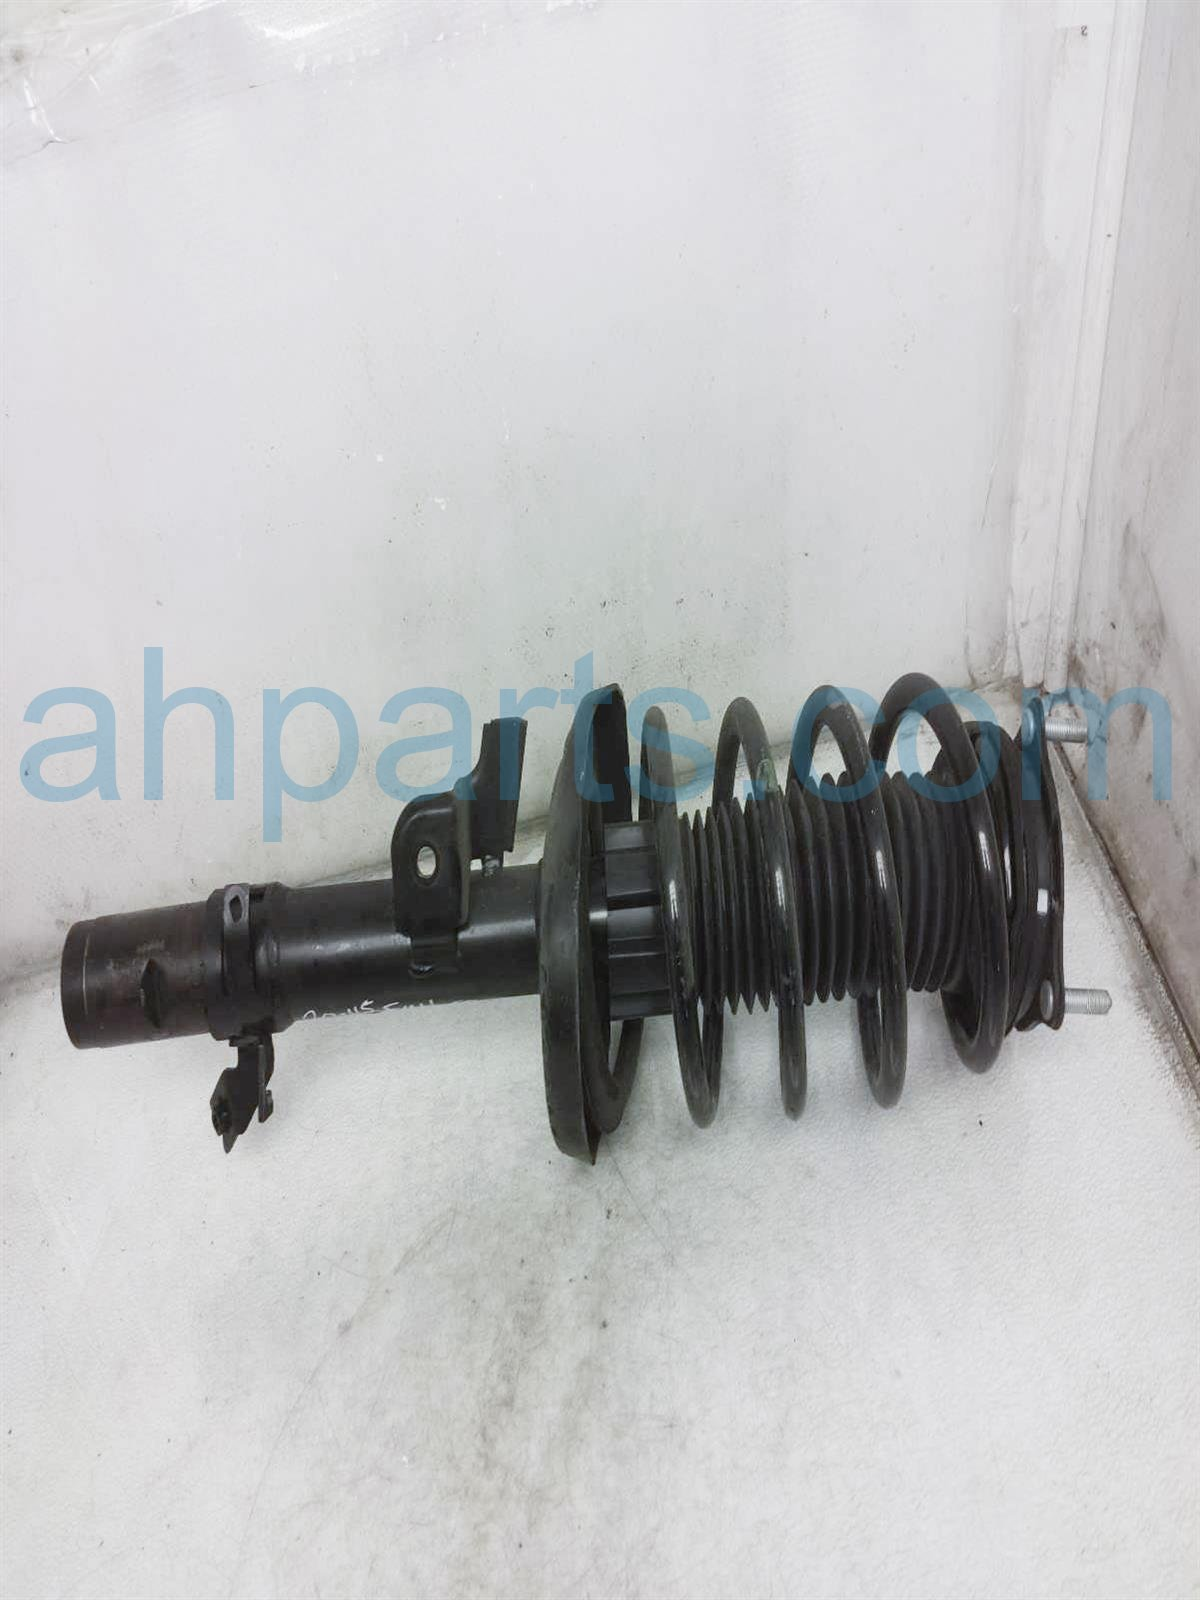 Sold 2019 Honda Passport Front Driver Strut Shock + Spring 51621 TGS A01 Replacement